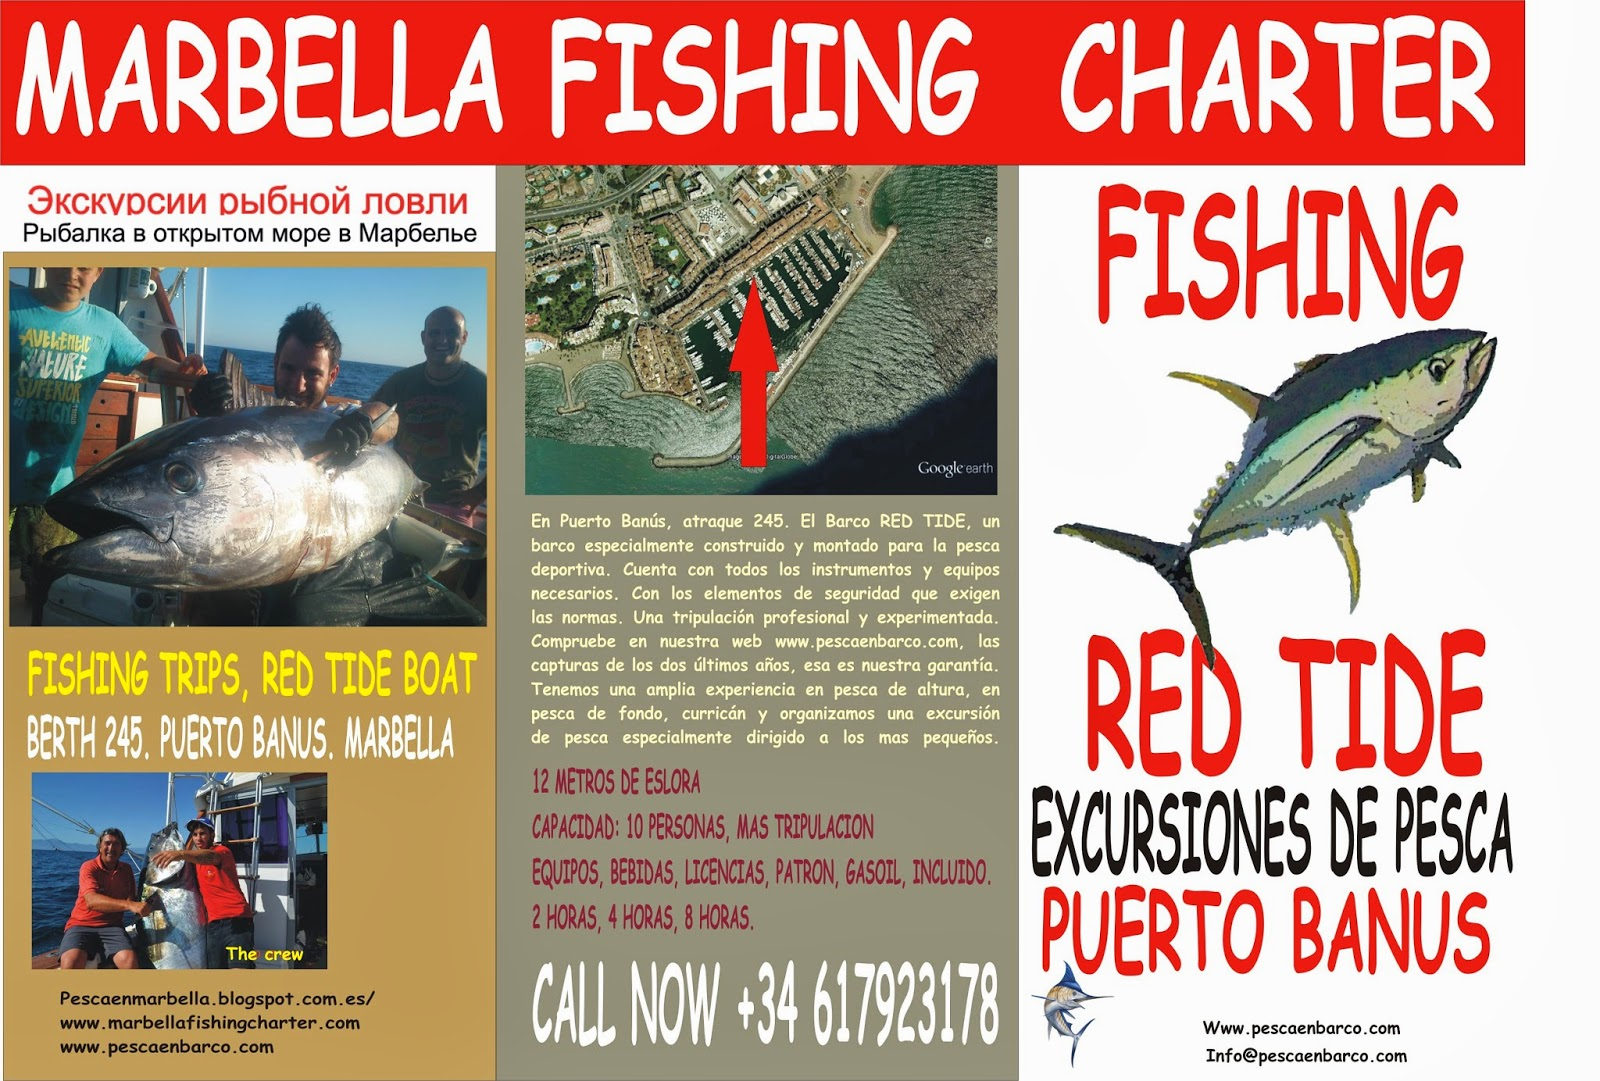 Fishing charter, Excursiones de pesca. Marbella, MAlaga, Spain.